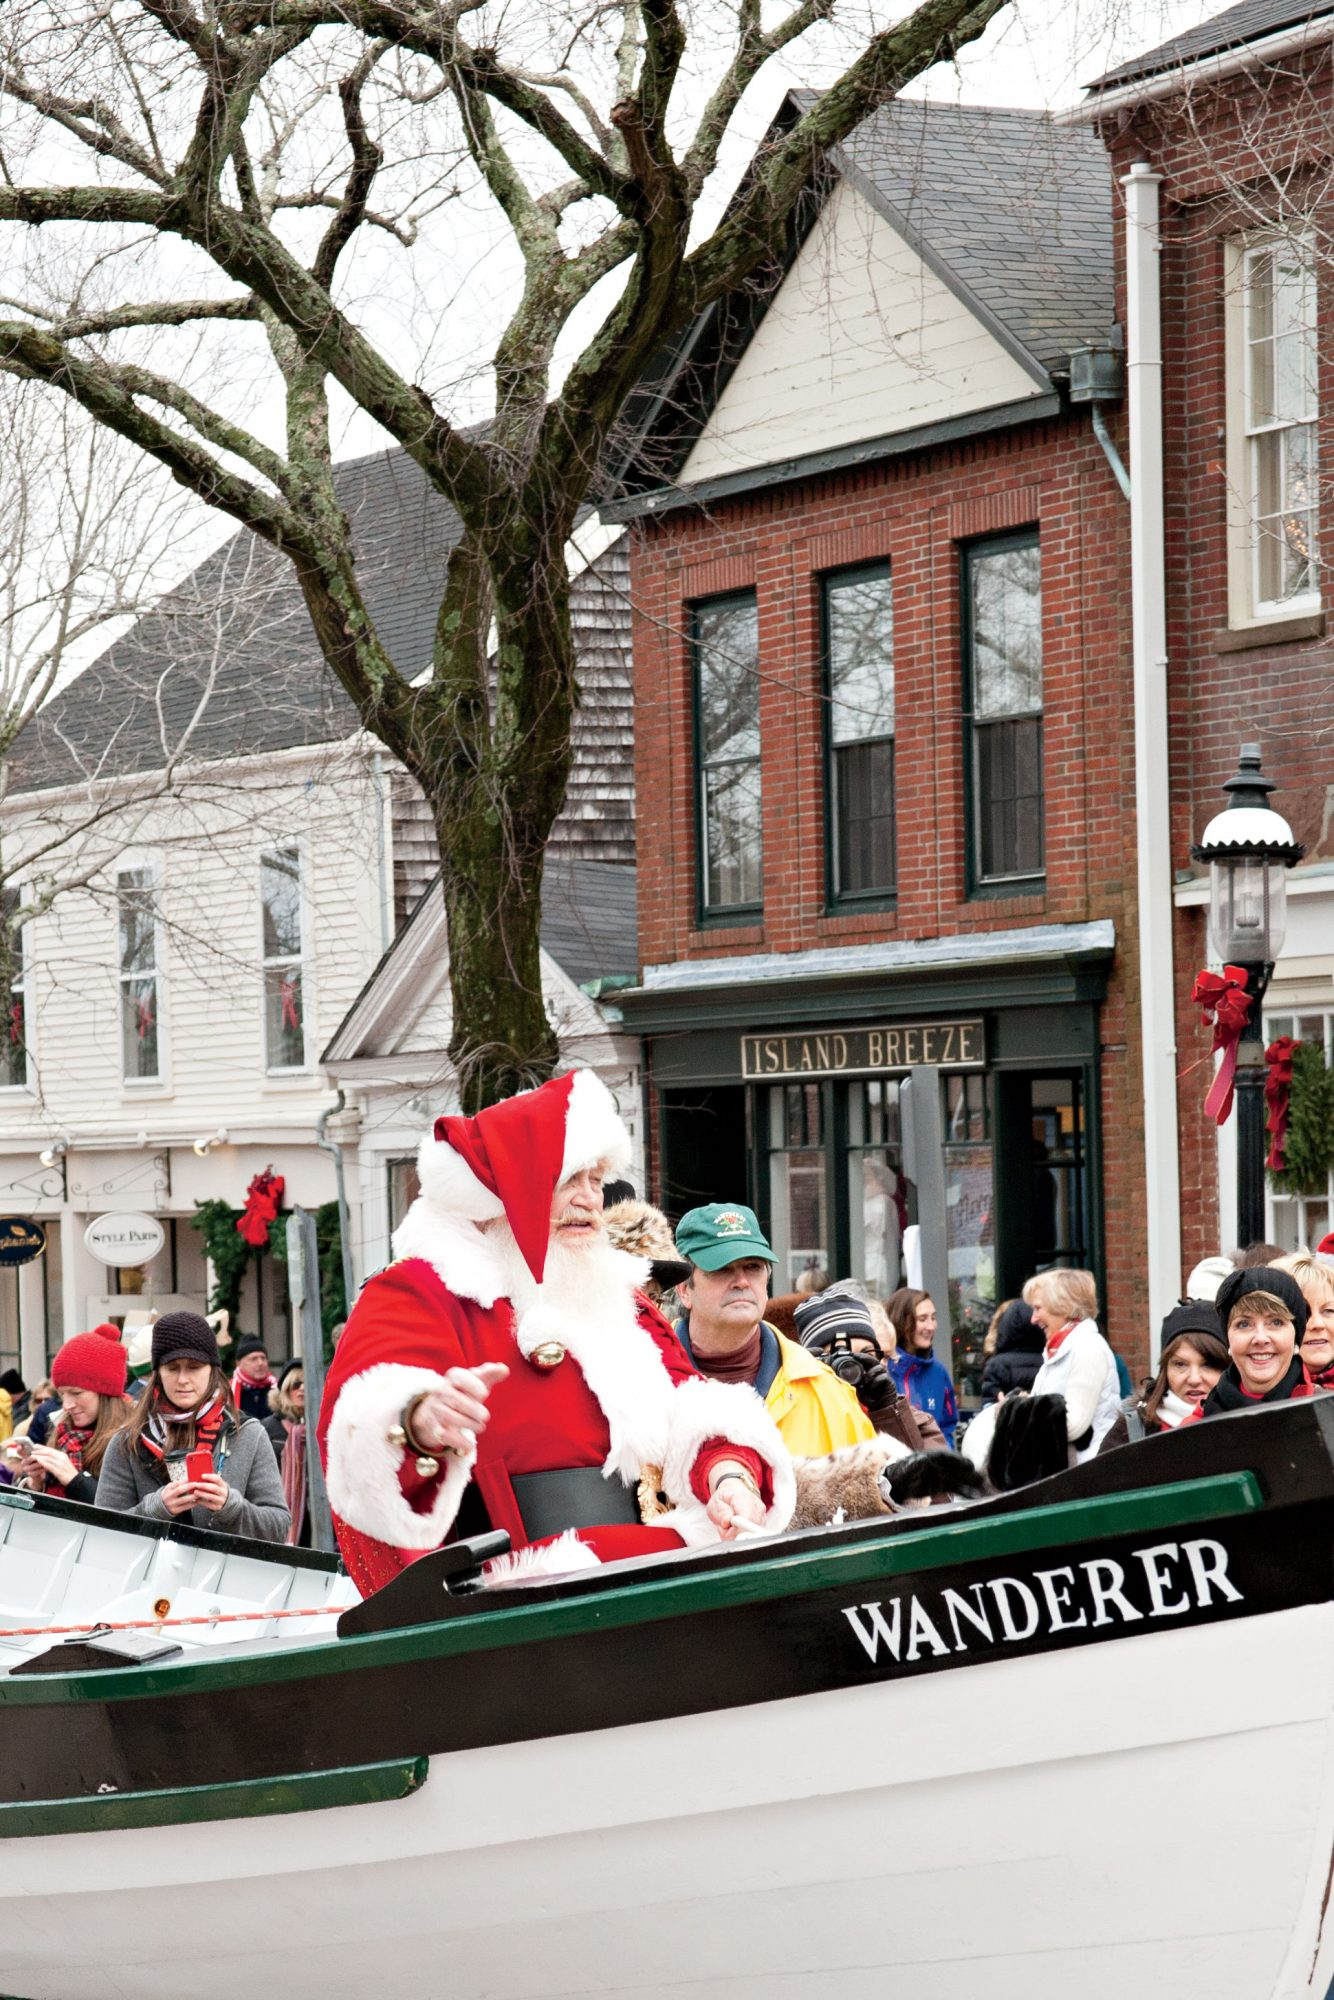 Santa really does come by boat to this beautiful island, as part of the annual Christmas Stroll (this year it's December 2-4), an abundance of incredible shopping, eating, and drinking amidst great good cheer (and cobblestone streets lined with...